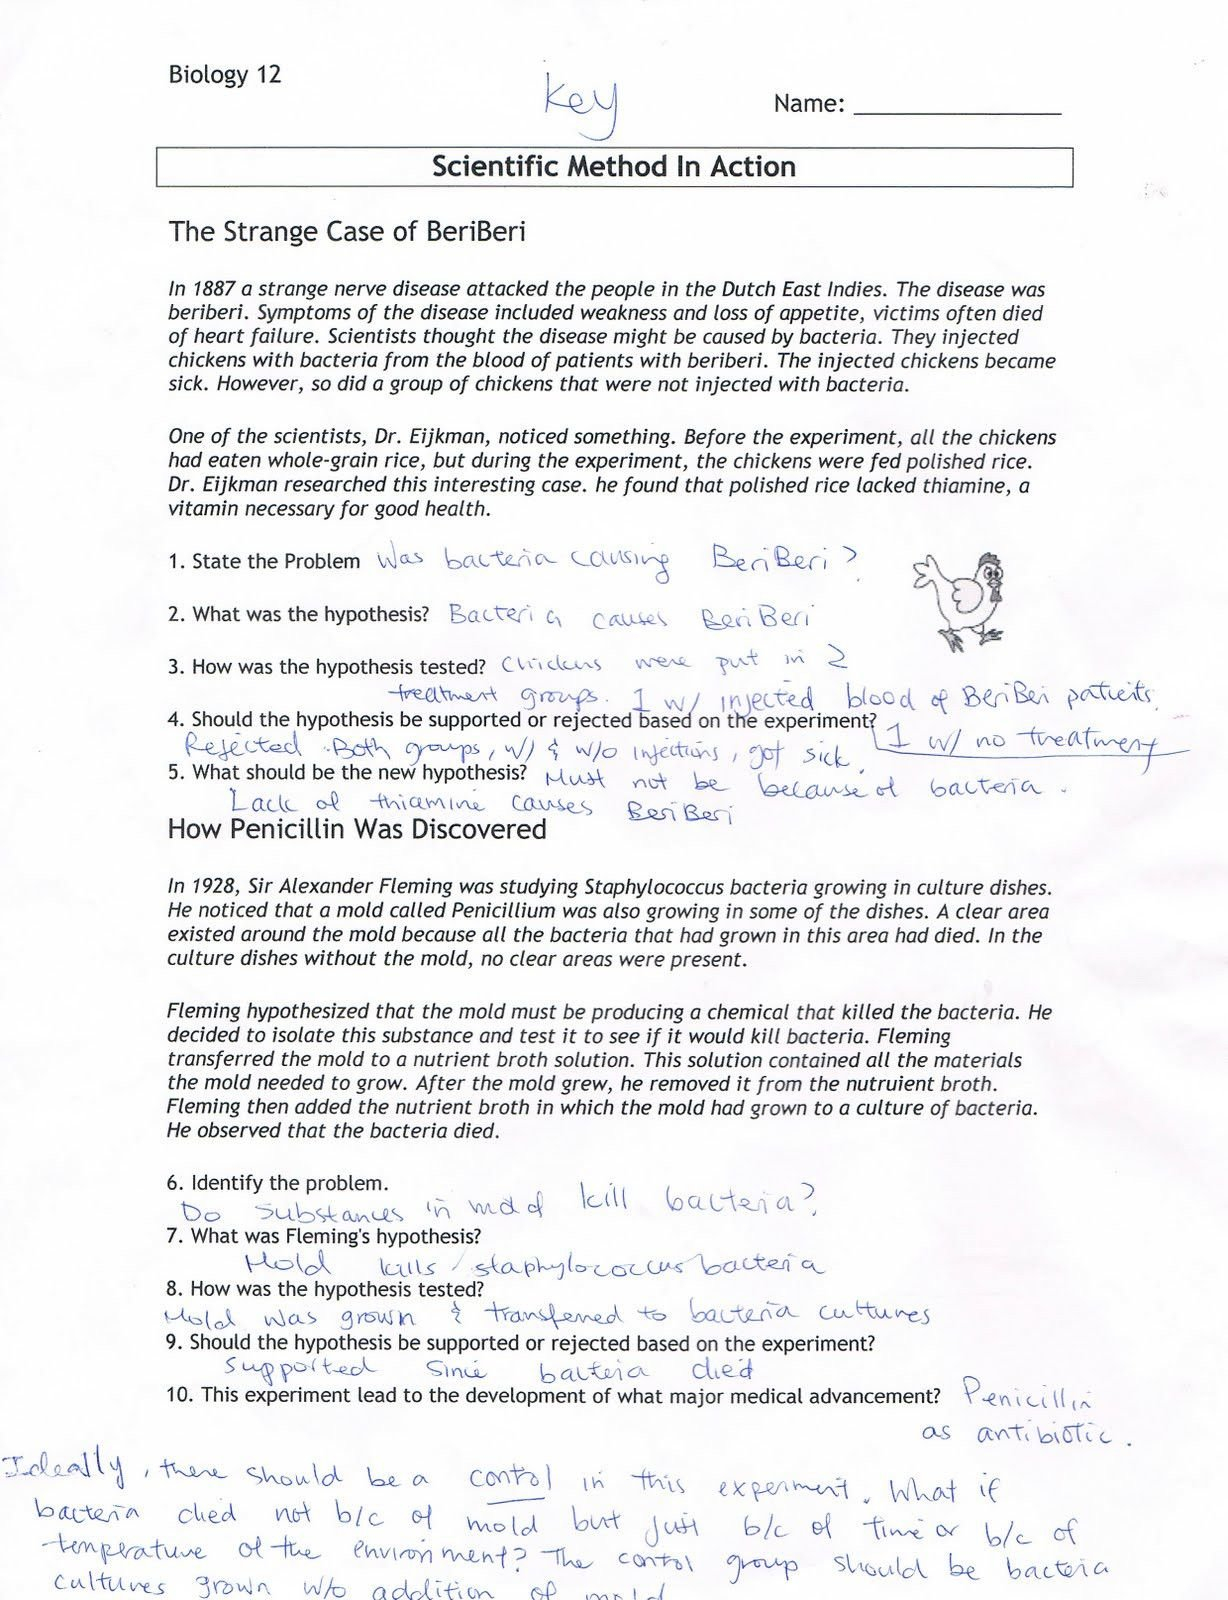 Scientific Inquiry Worksheet Answers  Briefencounters With Regard To Scientific Inquiry Worksheet Answer Key